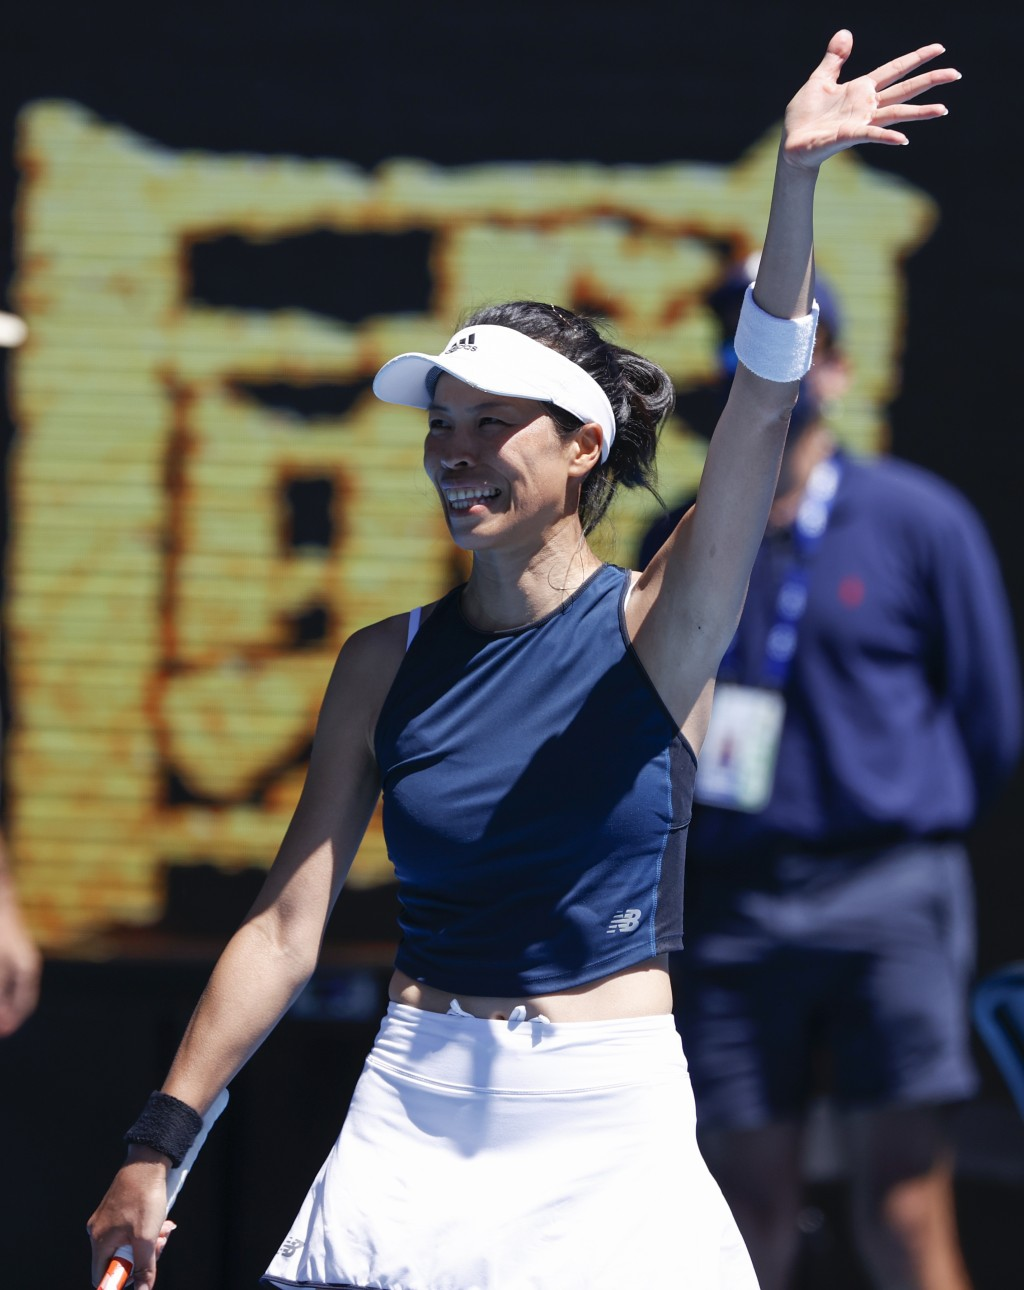 Taiwan's Hsieh Su-Wei, left, celebrates after defeating Canada's Bianca Andreescu in their second round match at the Australian Open tennis championsh...